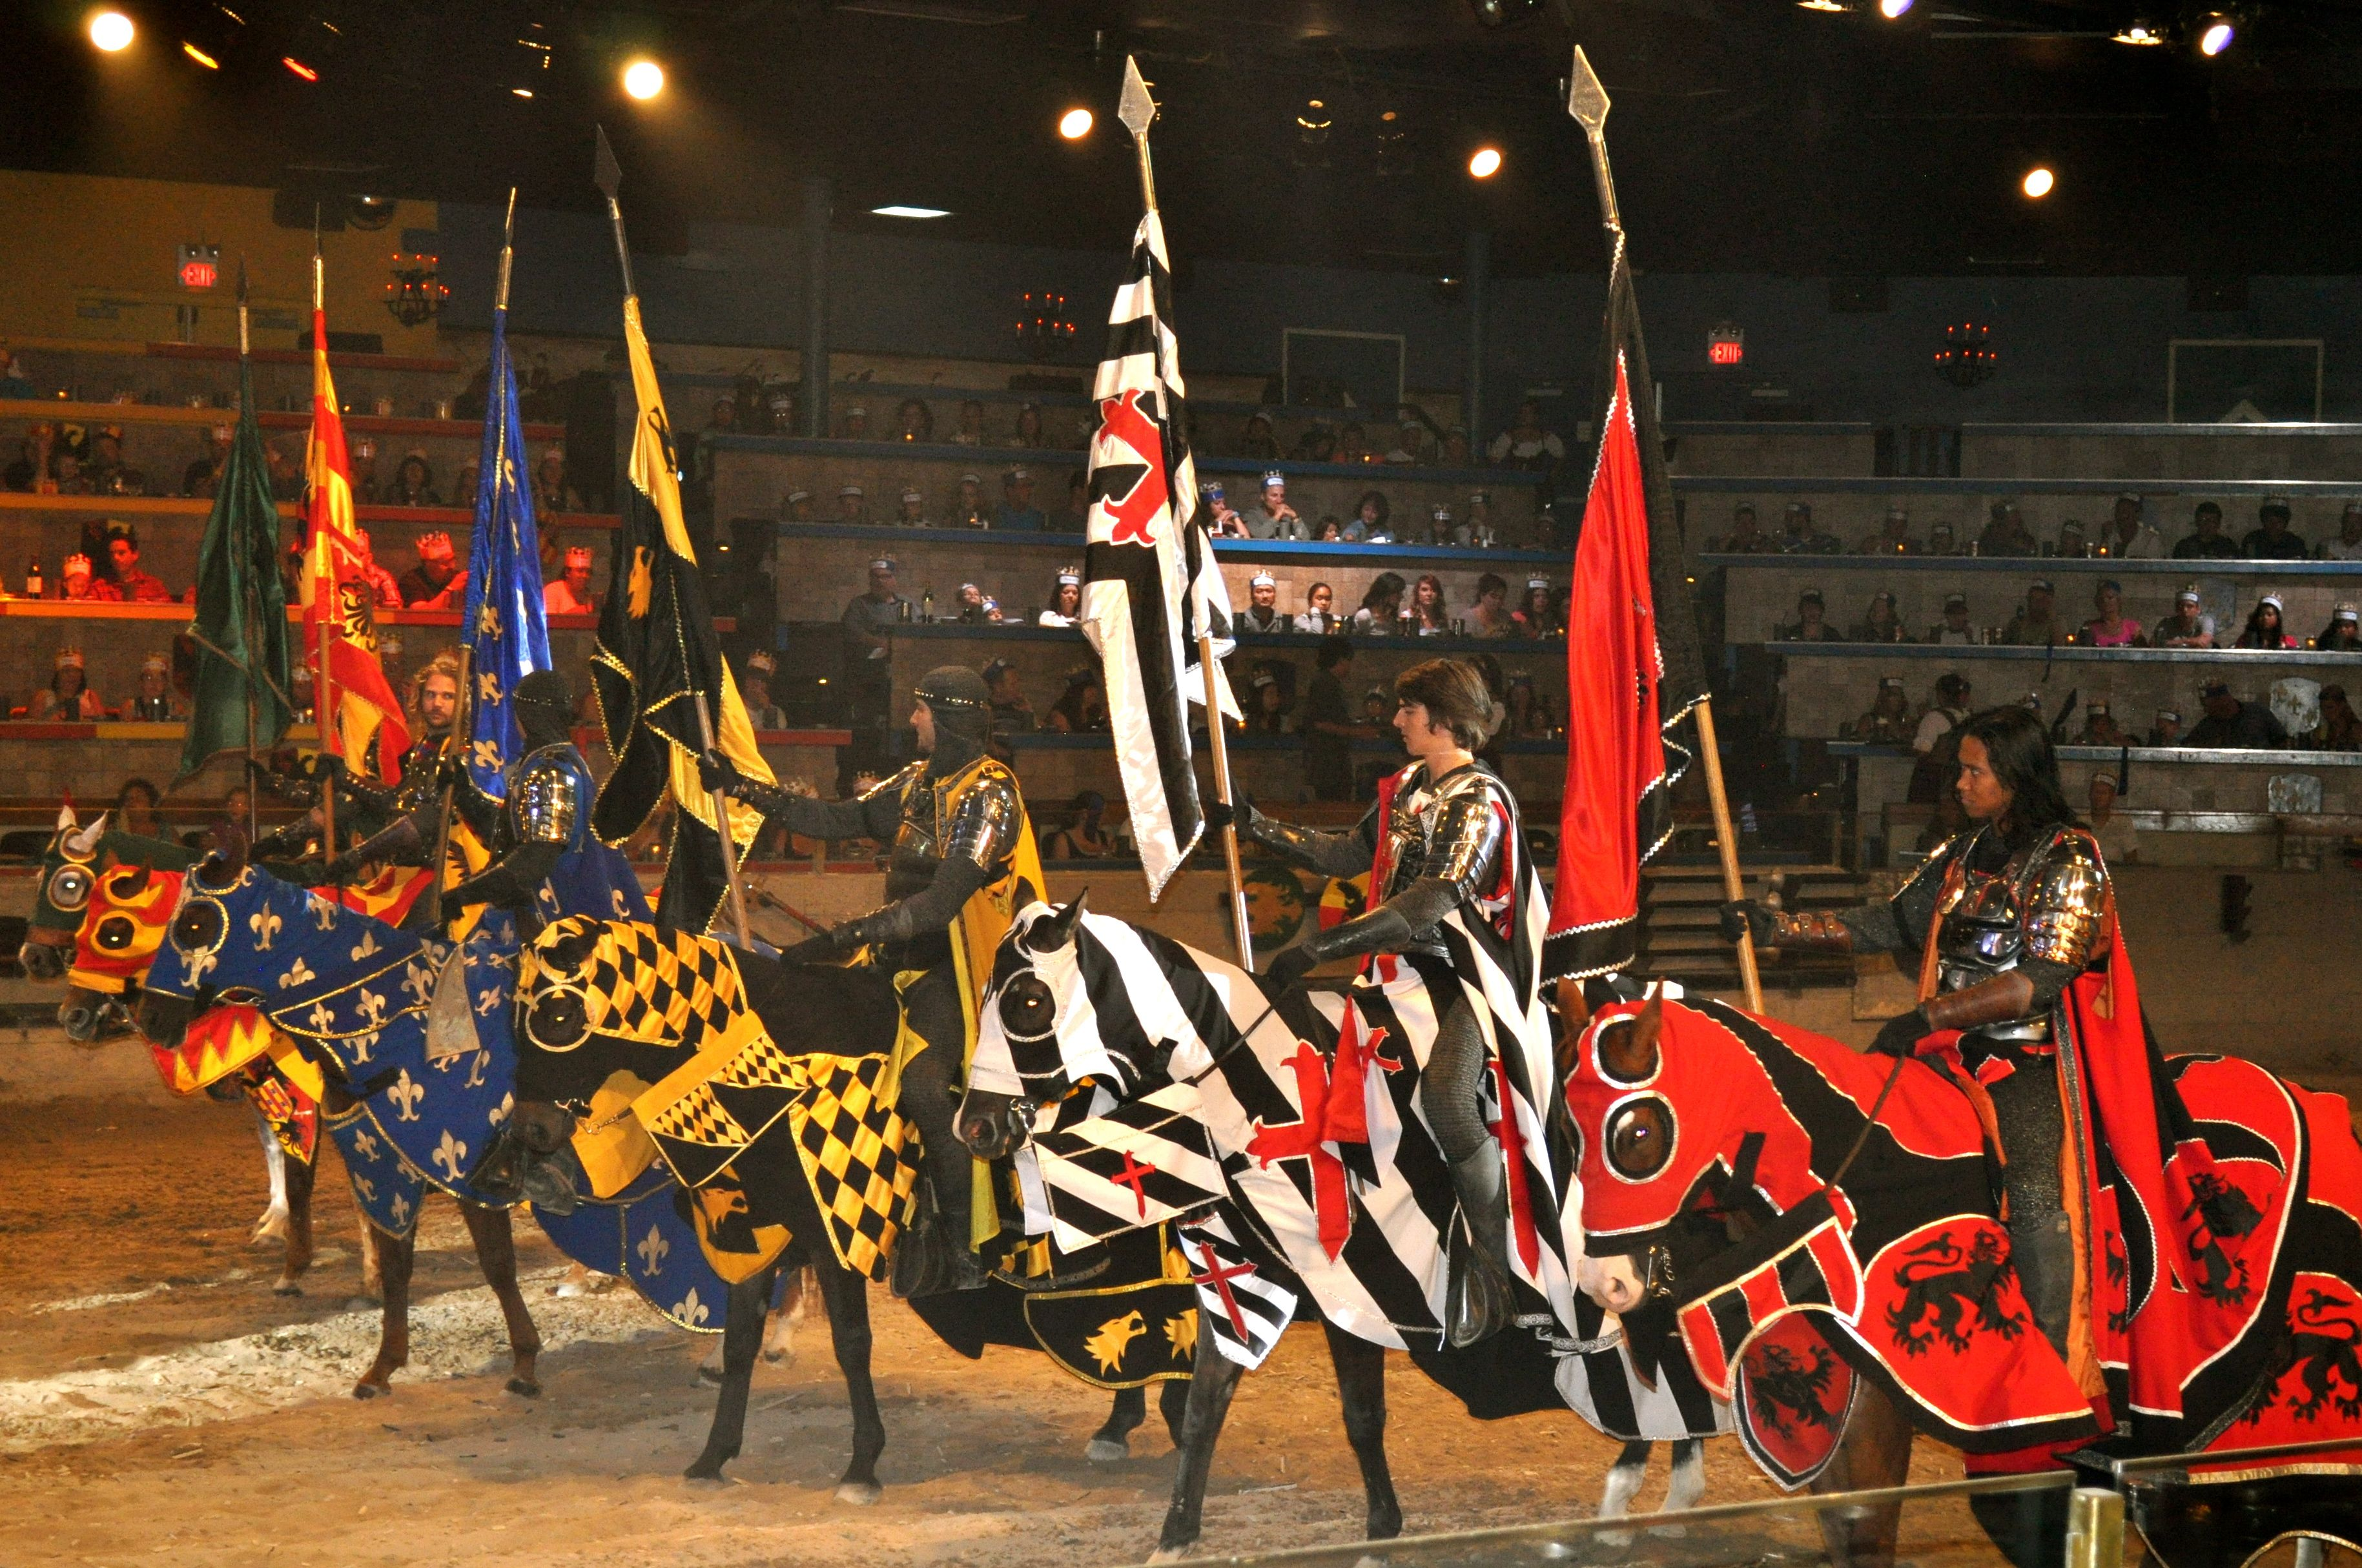 Medieval Times Dinner and Tournament is a family dinner theater featuring staged medieval-style games, sword-fighting, and jousting. Medieval Times Entertainment, the holding company, is headquartered in Irving, Texas.